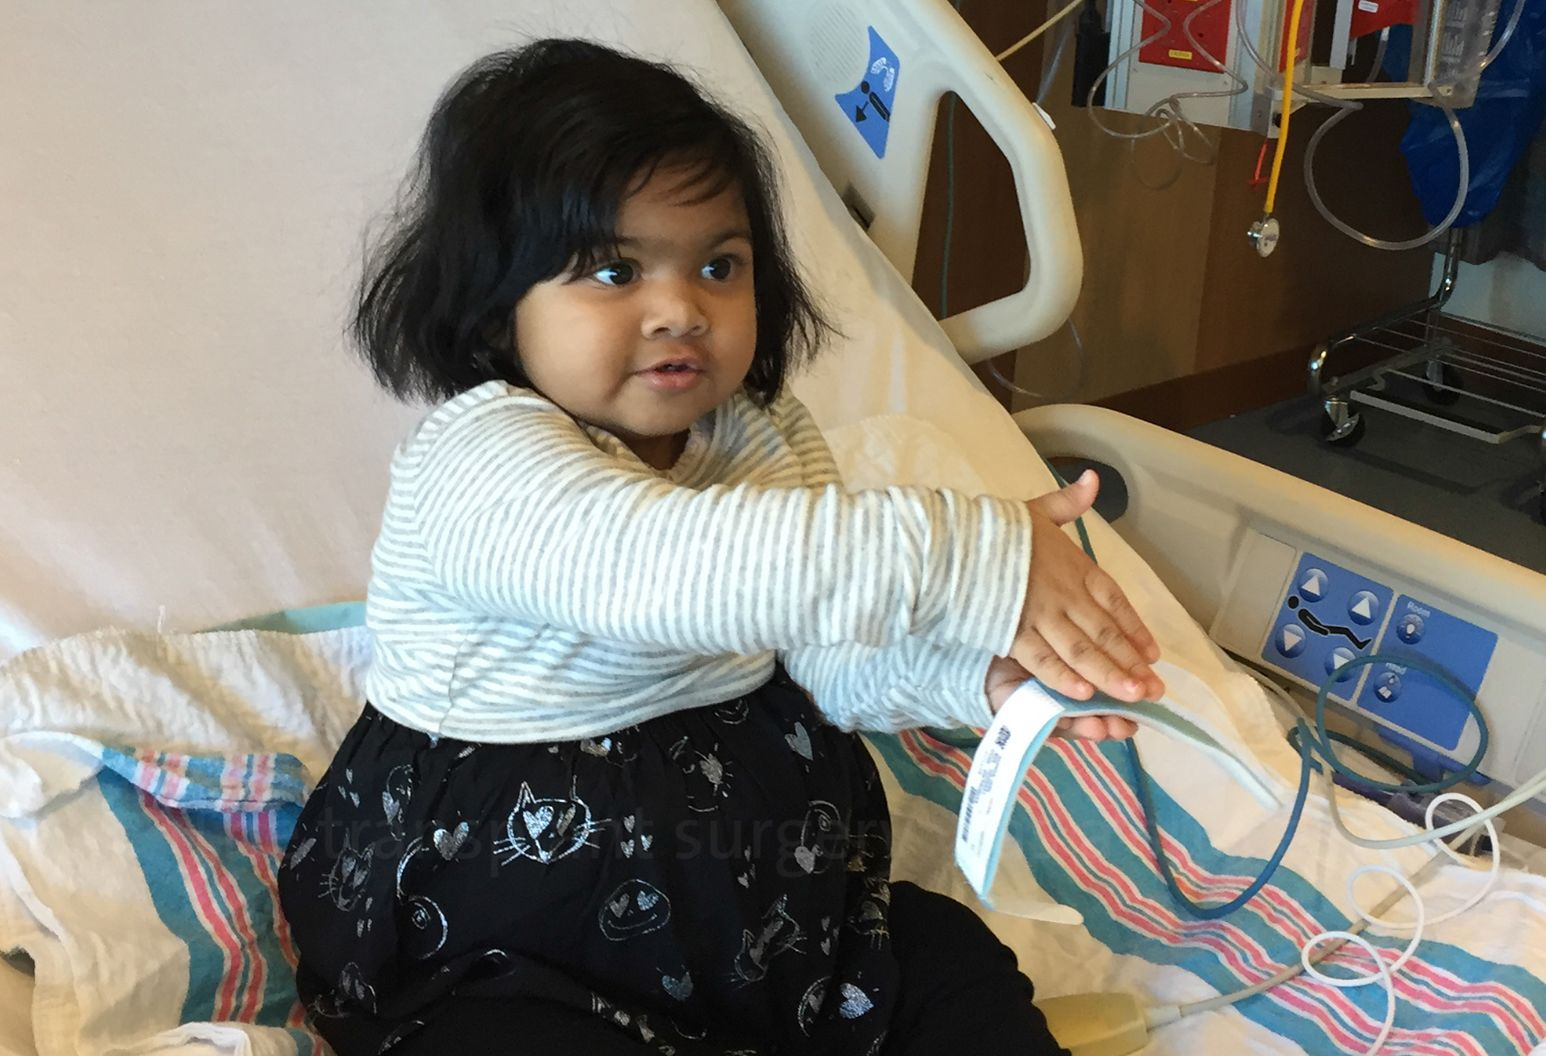 A girl toddler sits in a hospital bed wearing a dress with a black and gray cat print. She is playing with a hospital bracelet.